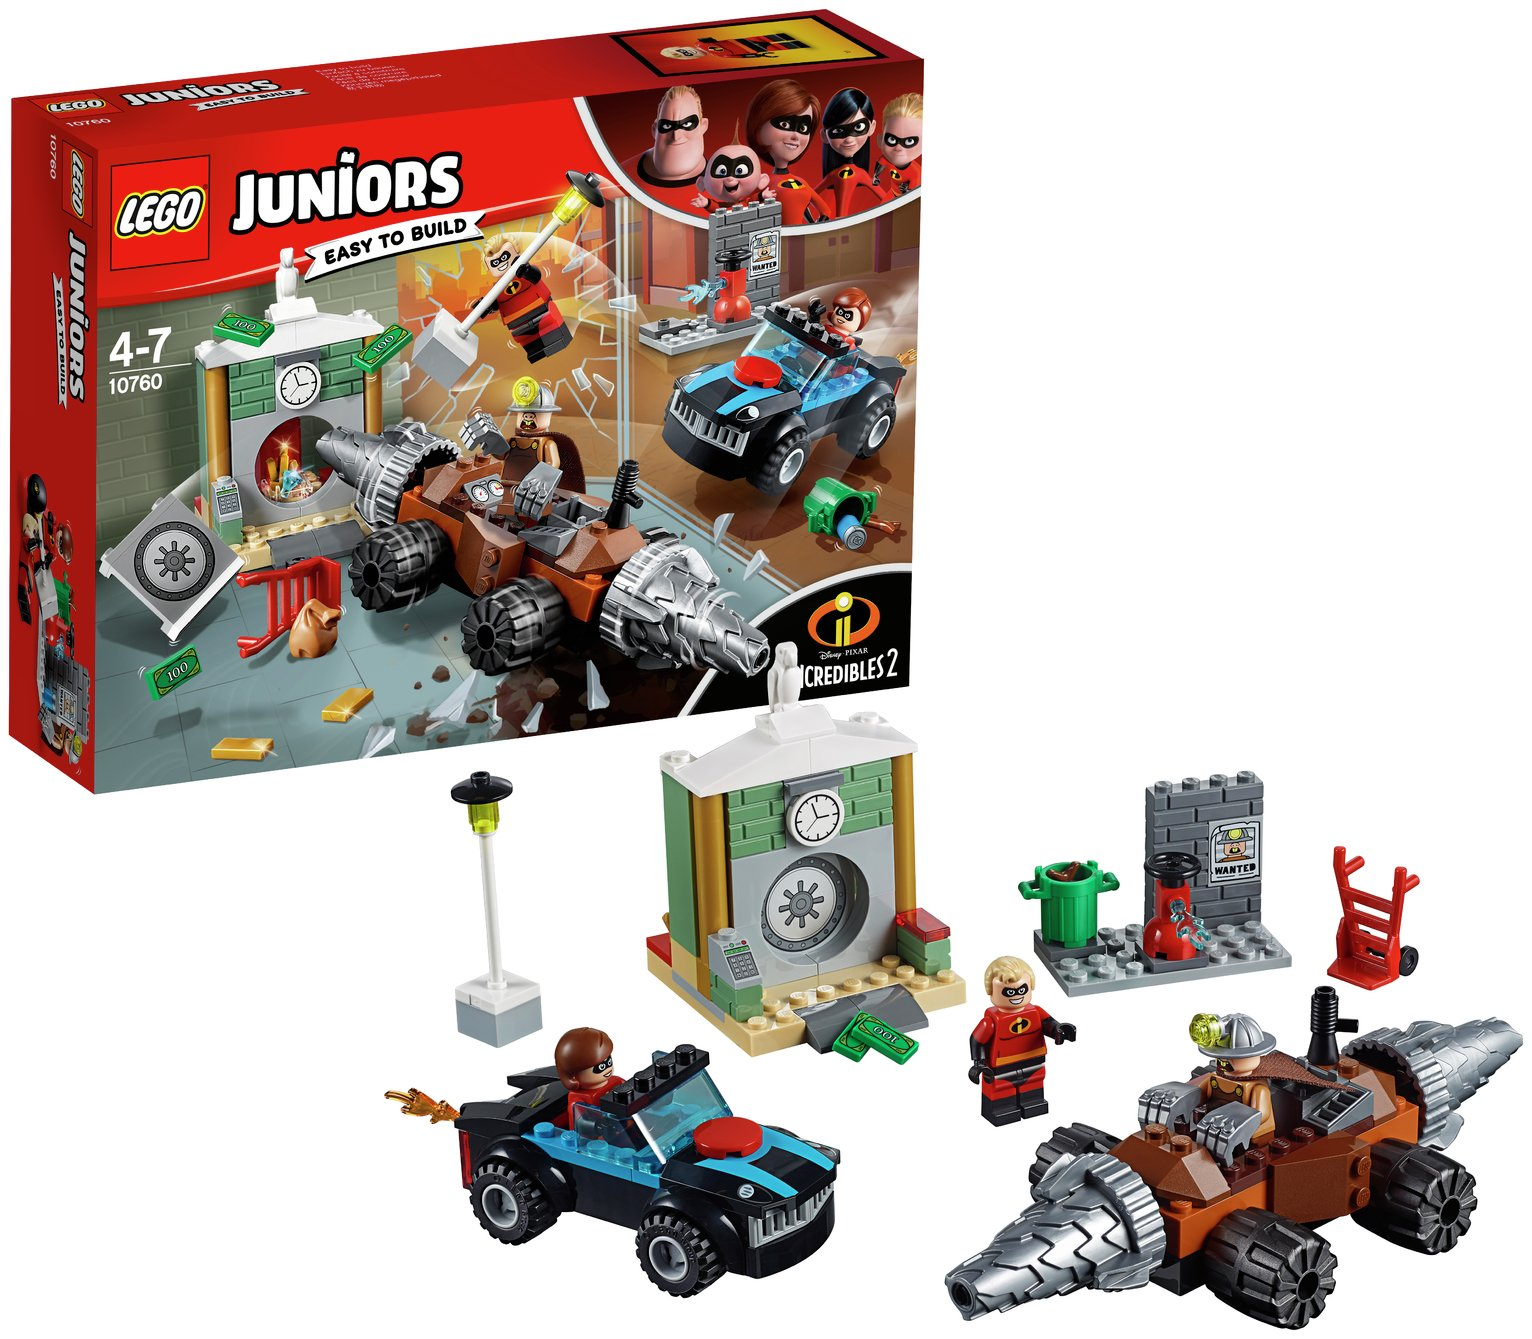 LEGO Juniors Incredibles 2 Underminer Bank Heist - 10760